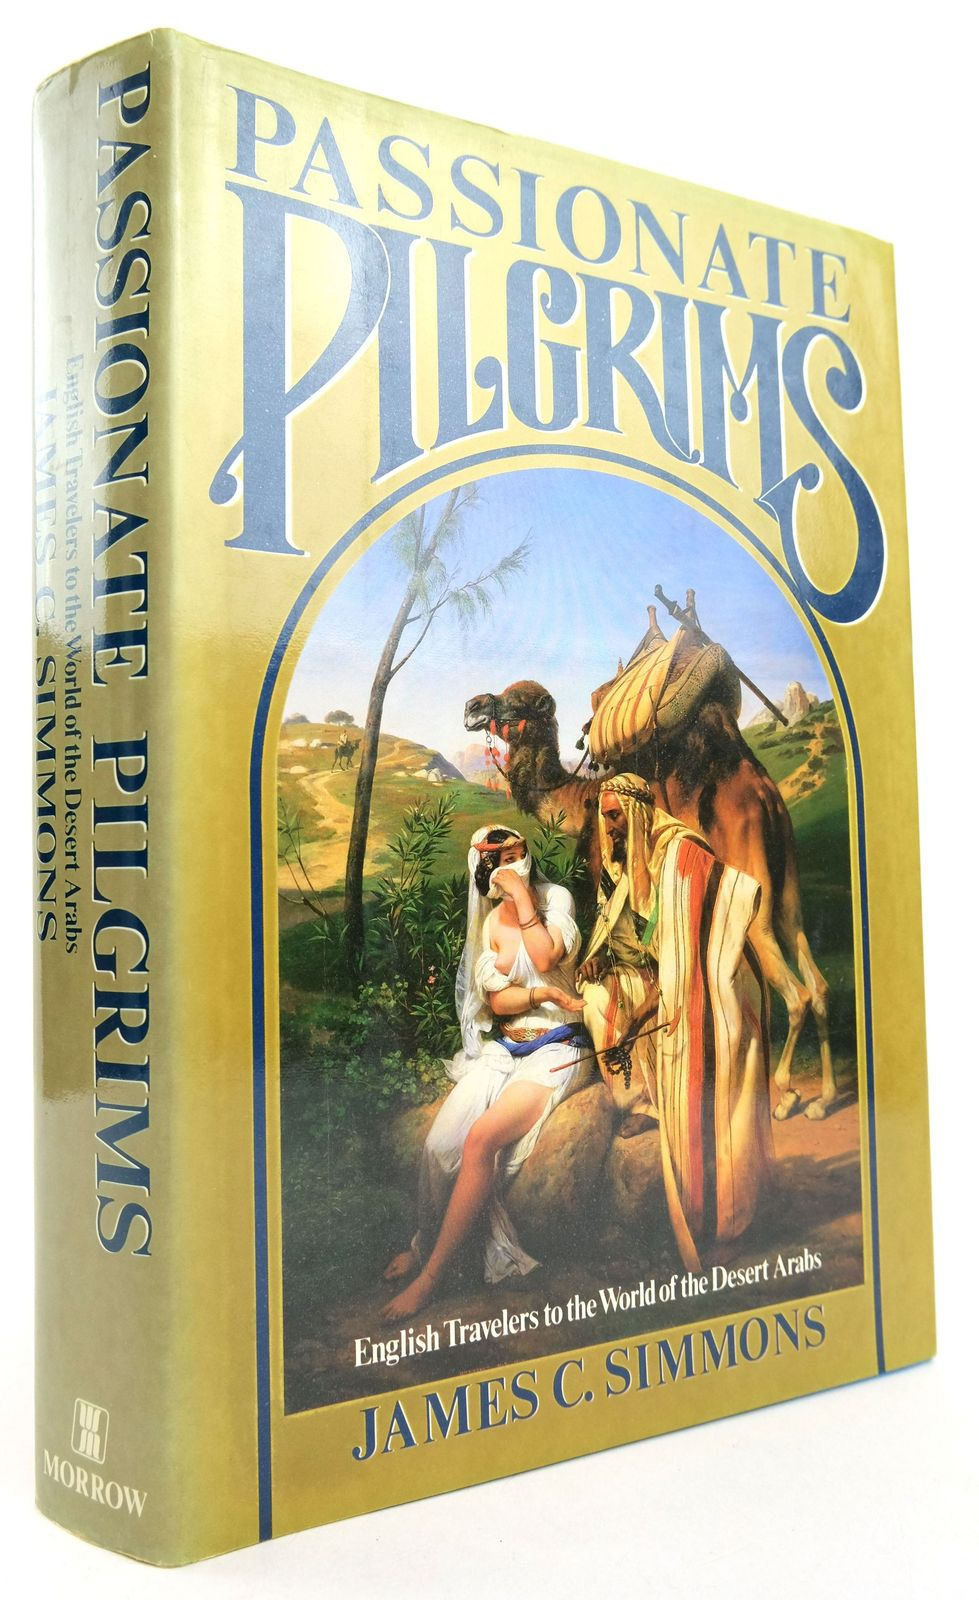 Photo of PASSIONATE PILGRIMS: ENGLISH TRAVELERS TO THE WORLD OF THE DESERT ARABS- Stock Number: 1819305